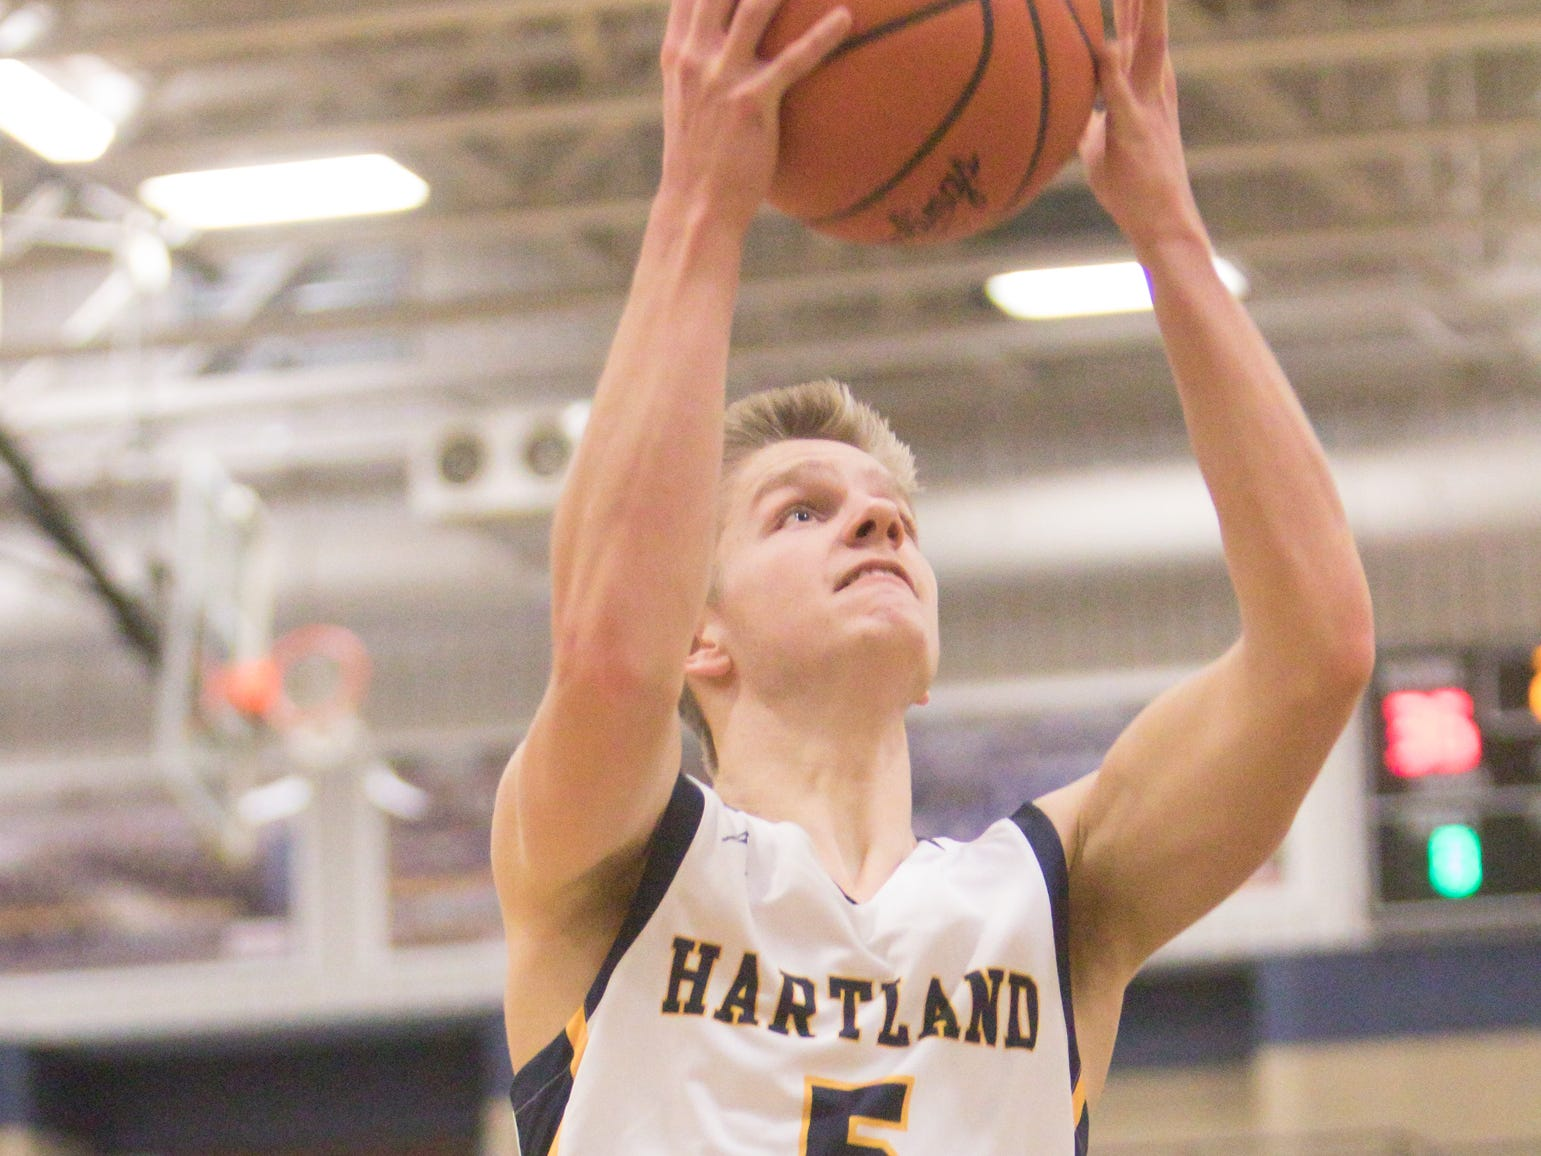 Trevor Kulsavage of Hartland shoots in the game against South Lyon East Friday, Dec. 28, 2018.